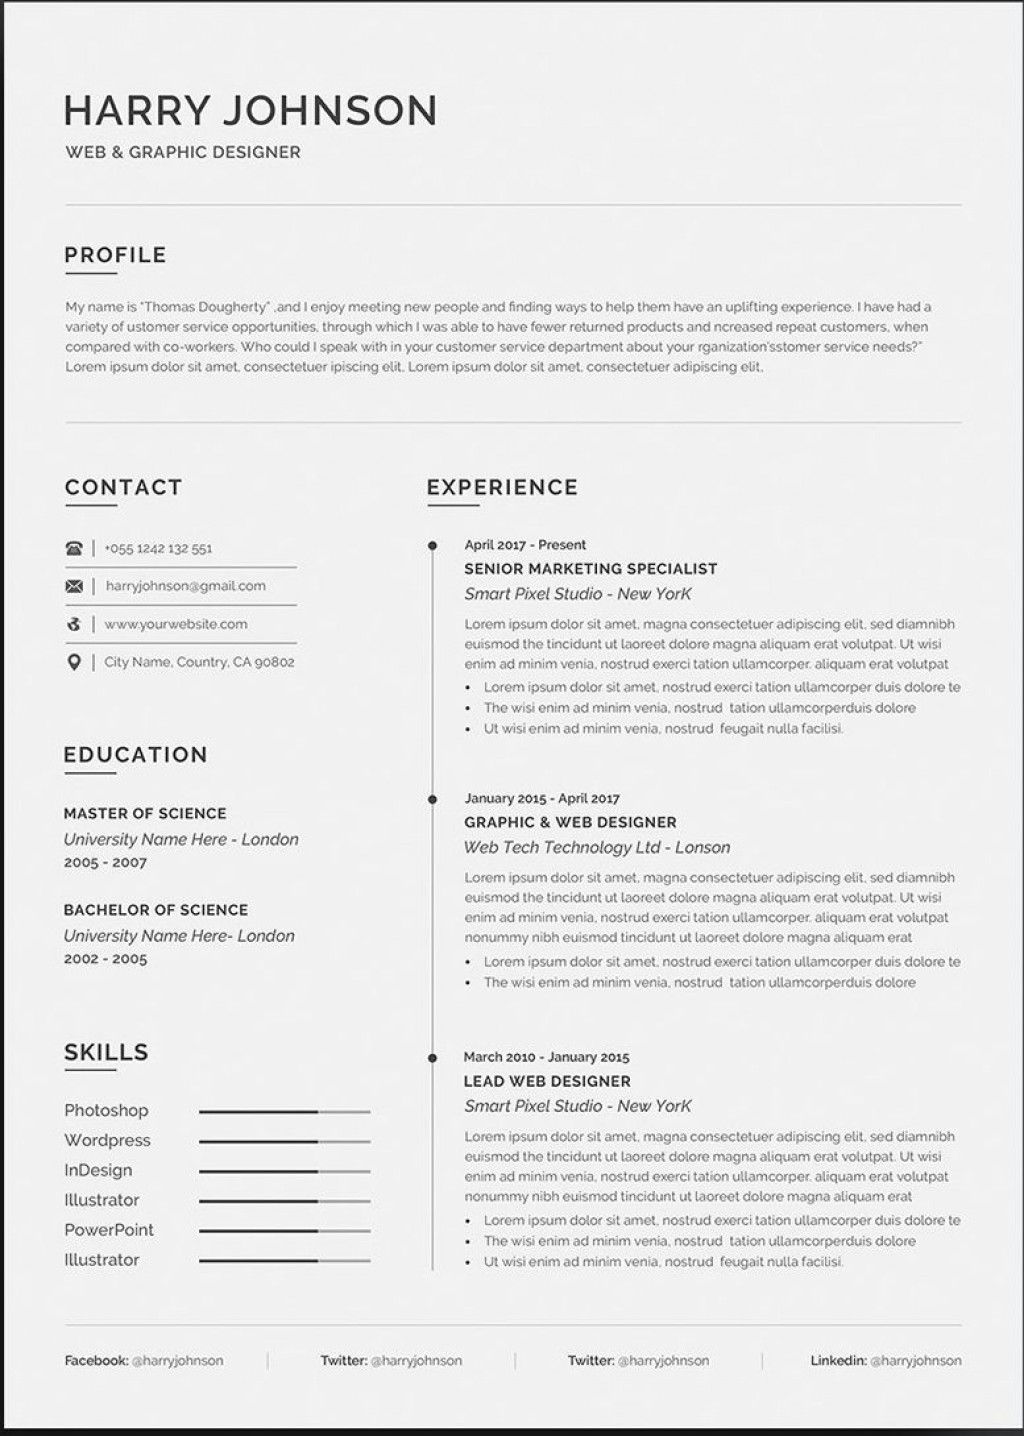 008 Simple Resume Template On Word Idea  2007 Download 2016 How To Get 2010Large